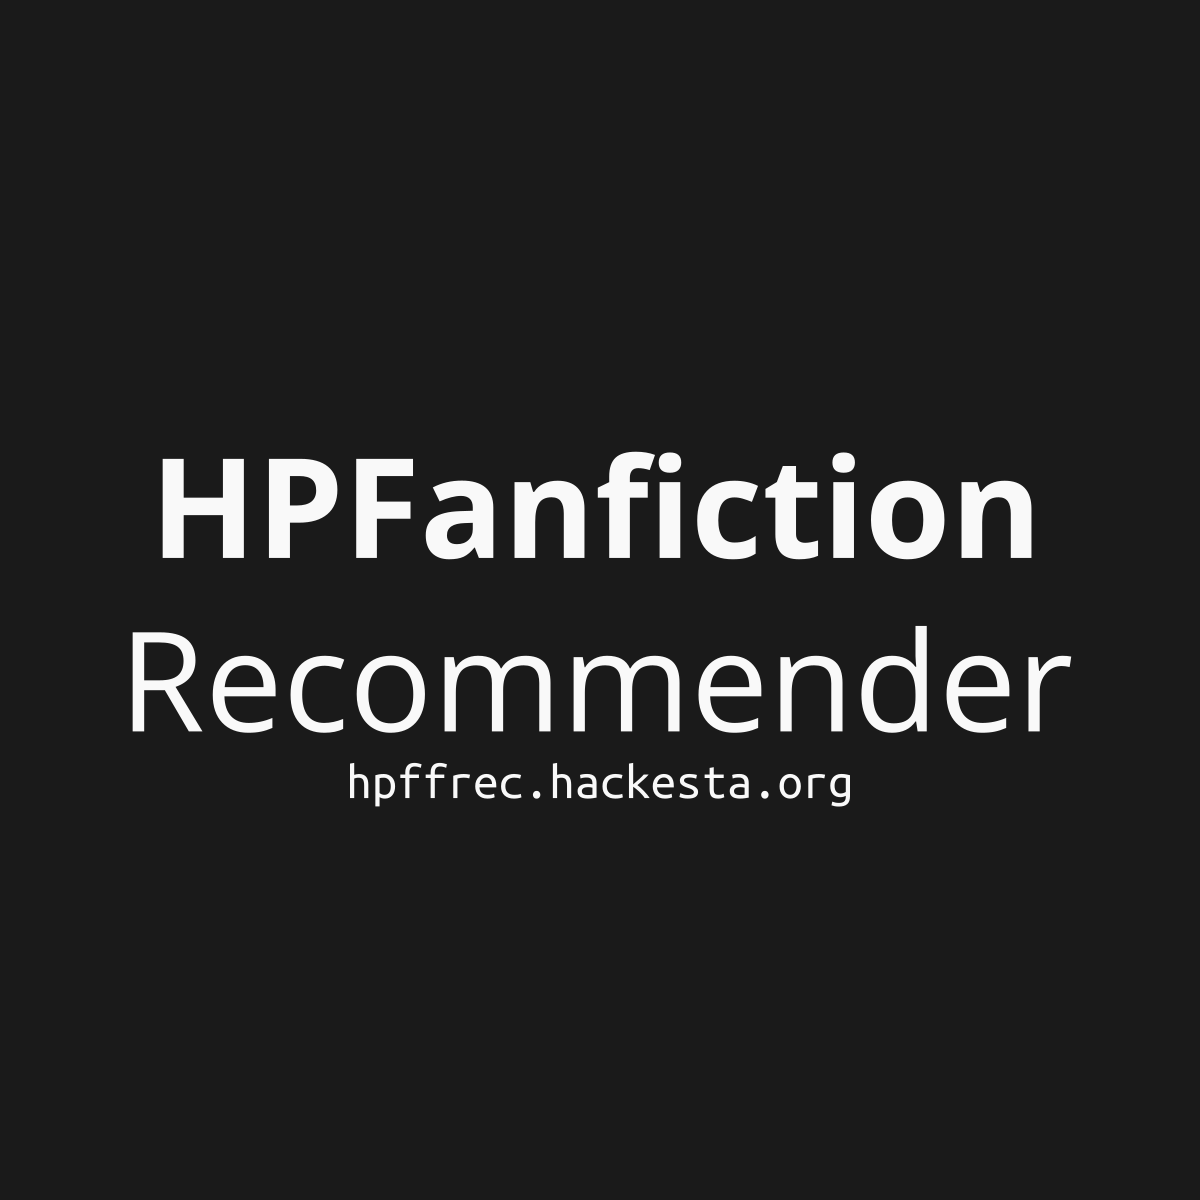 HPFanfiction Recommender